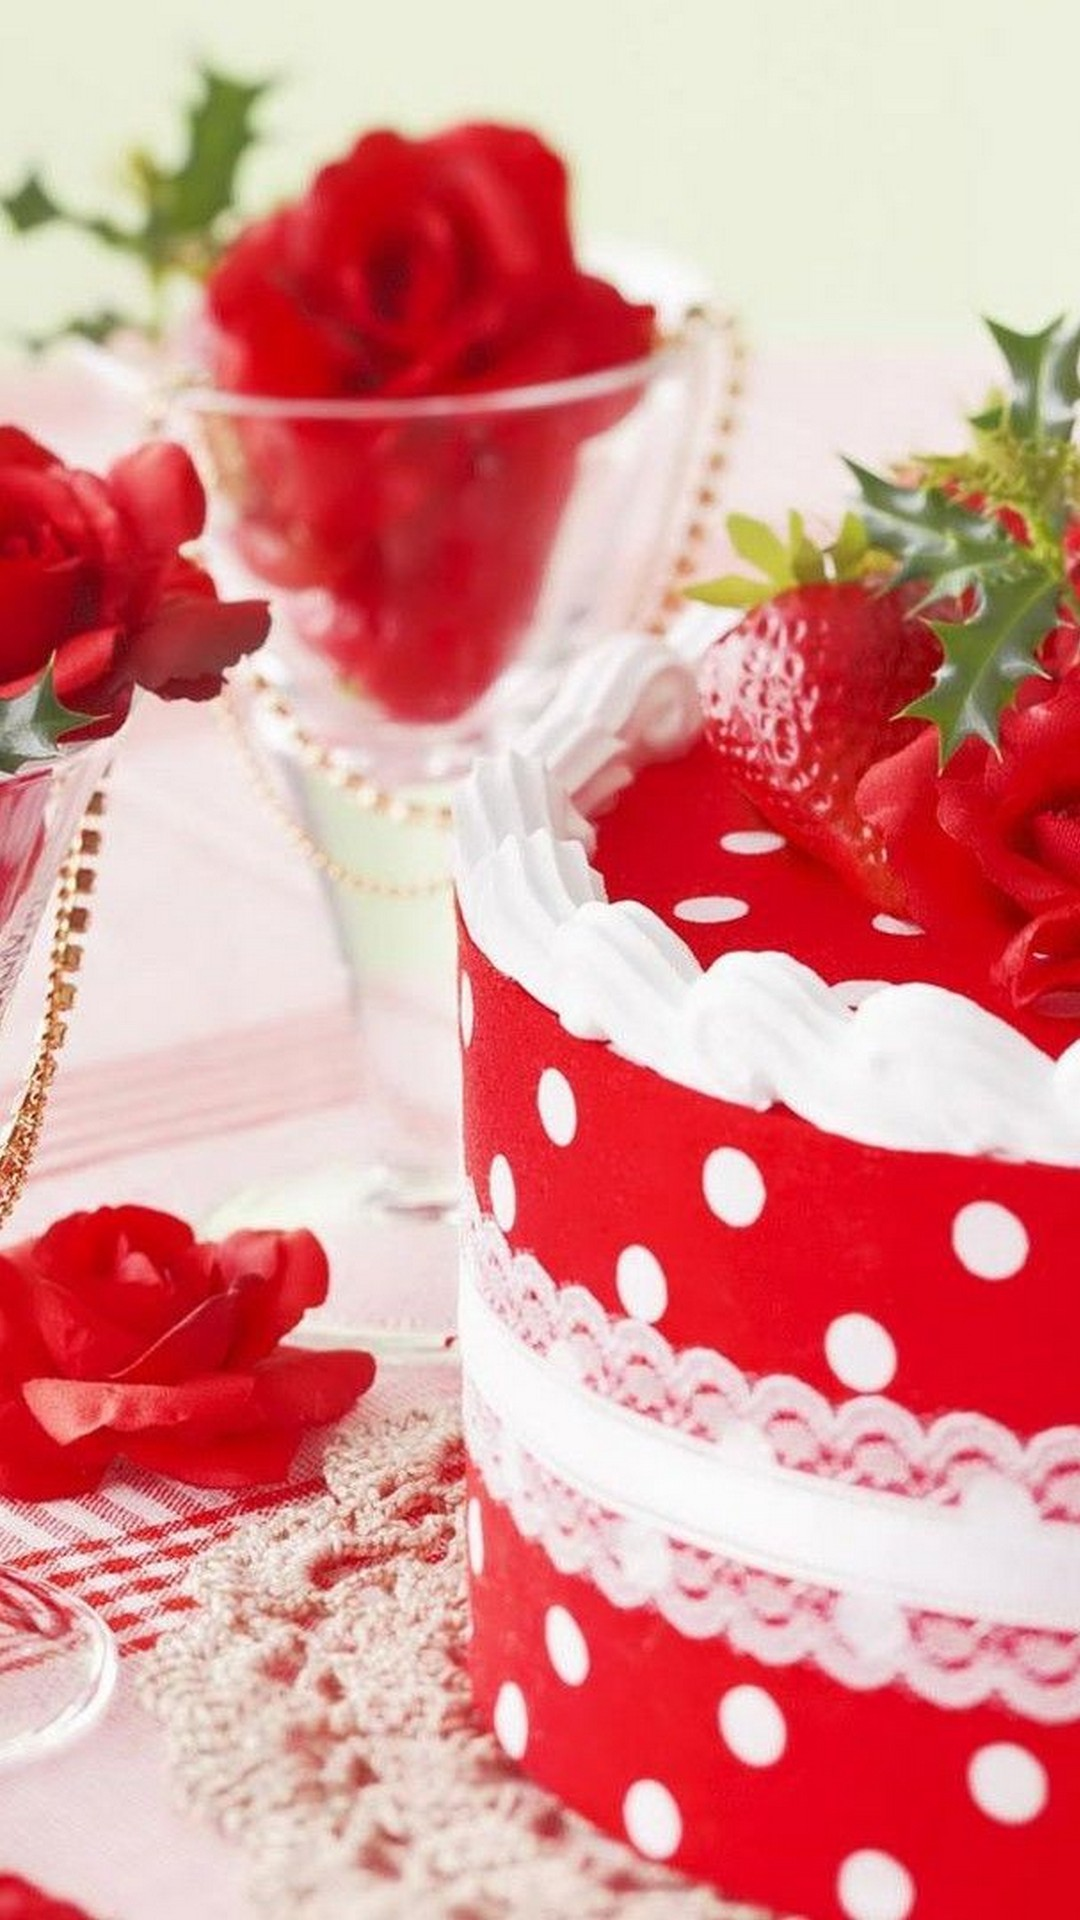 Strawberry Cake HD Wallpapers For Android